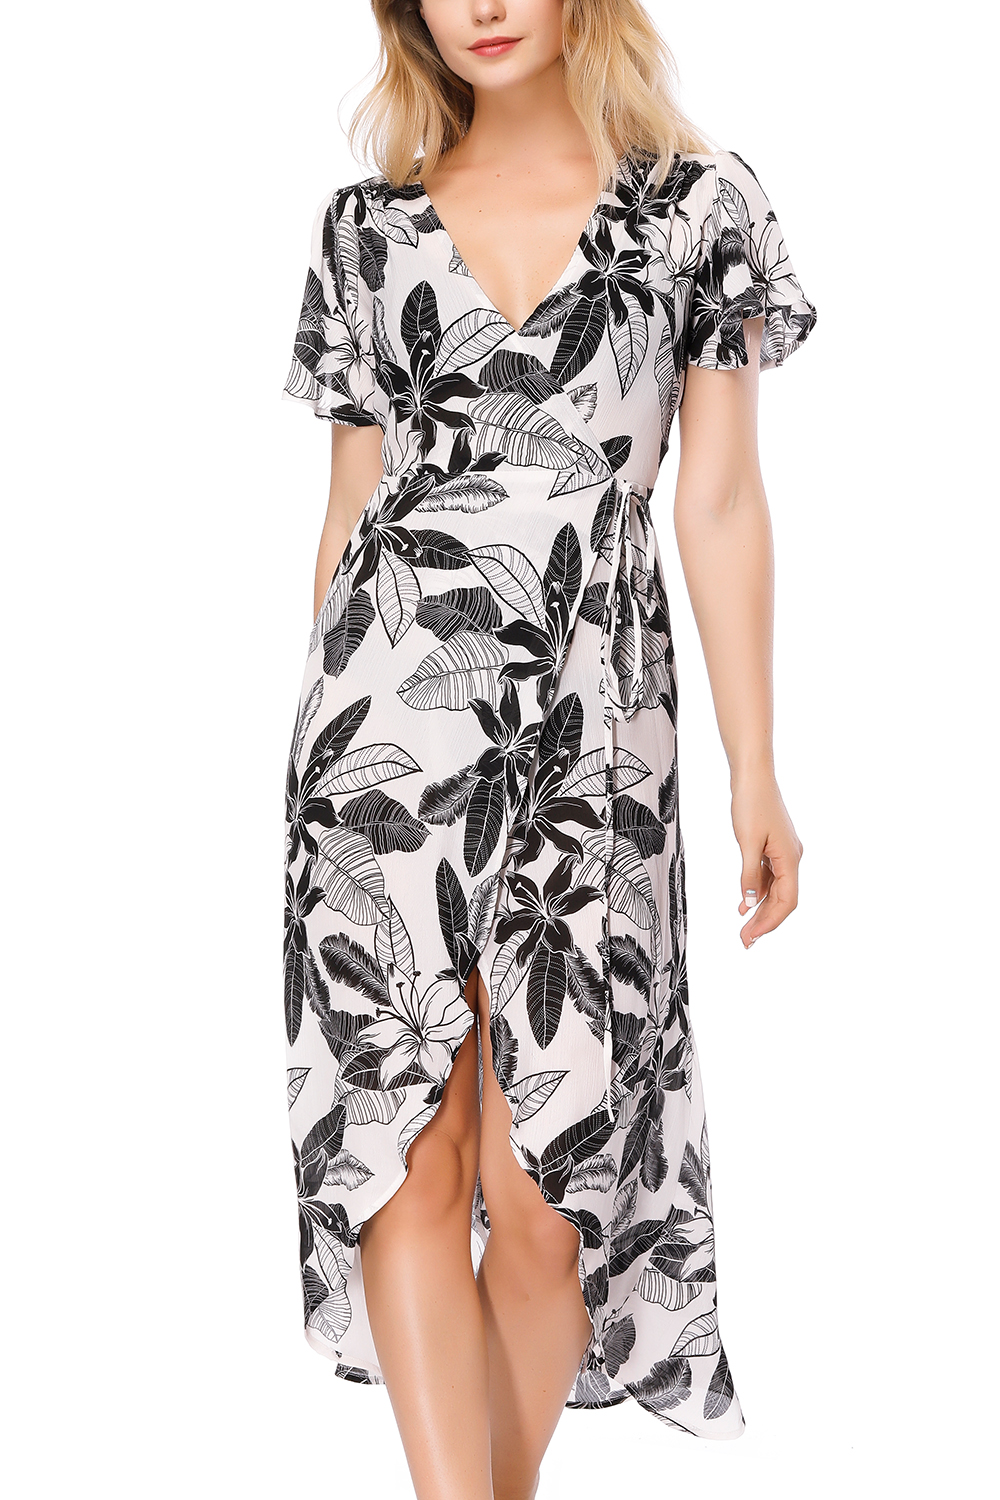 Beach Cover up Bikini Floral Dress